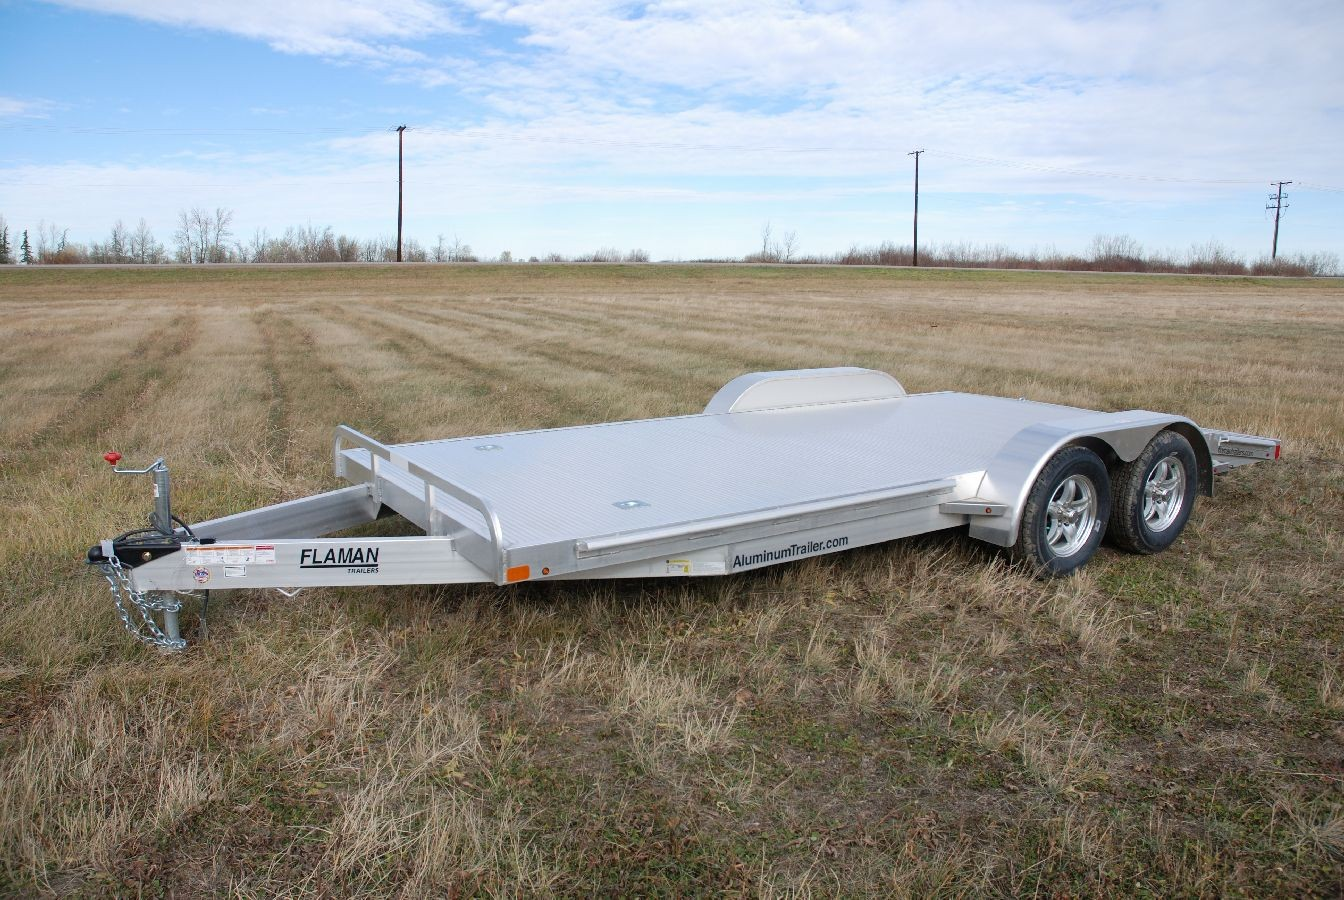 Atv Option likewise 8 5x24 Enclosed Trailer Ii together with Aluminum Welding Jobs as well Transport Petrol Trailer Heavy Fuel Oil 60432590293 together with Metalian Maxi 4x4 Off Road C ing Trailers. on aluminum dump trailers